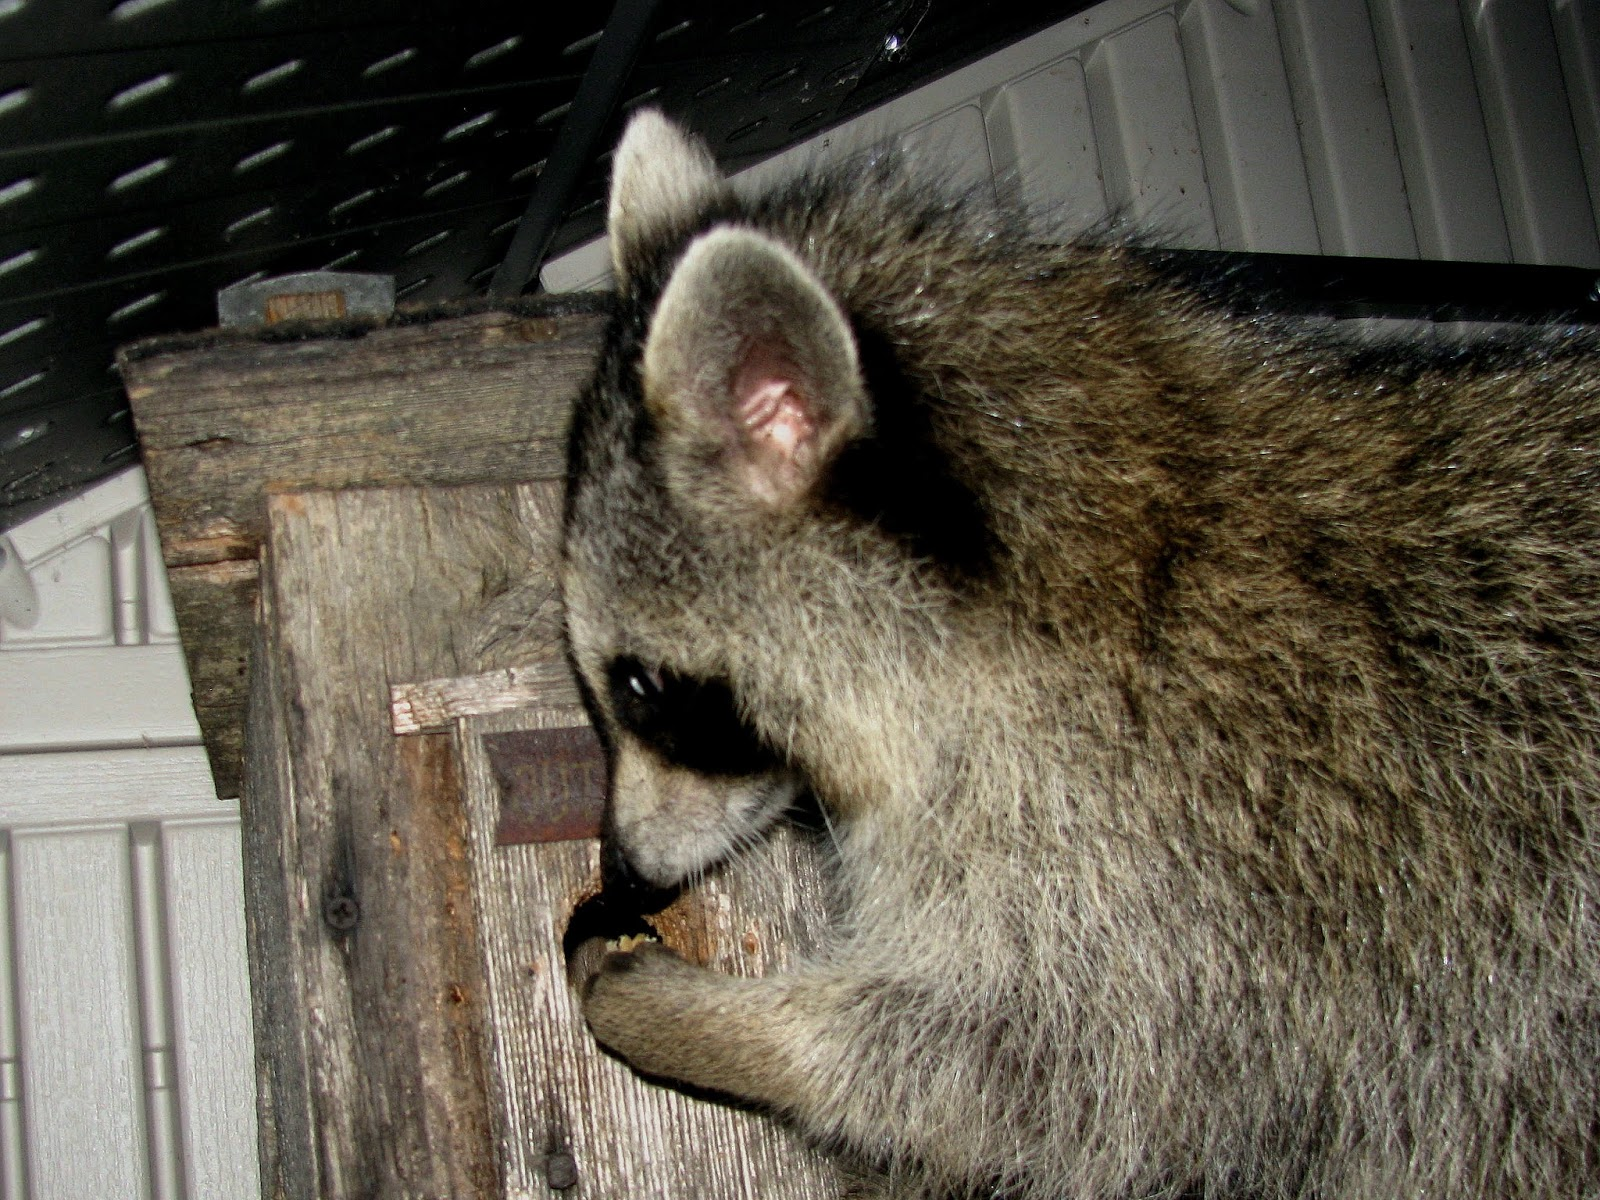 Rob and the Animals: The Little Raccoon That Could